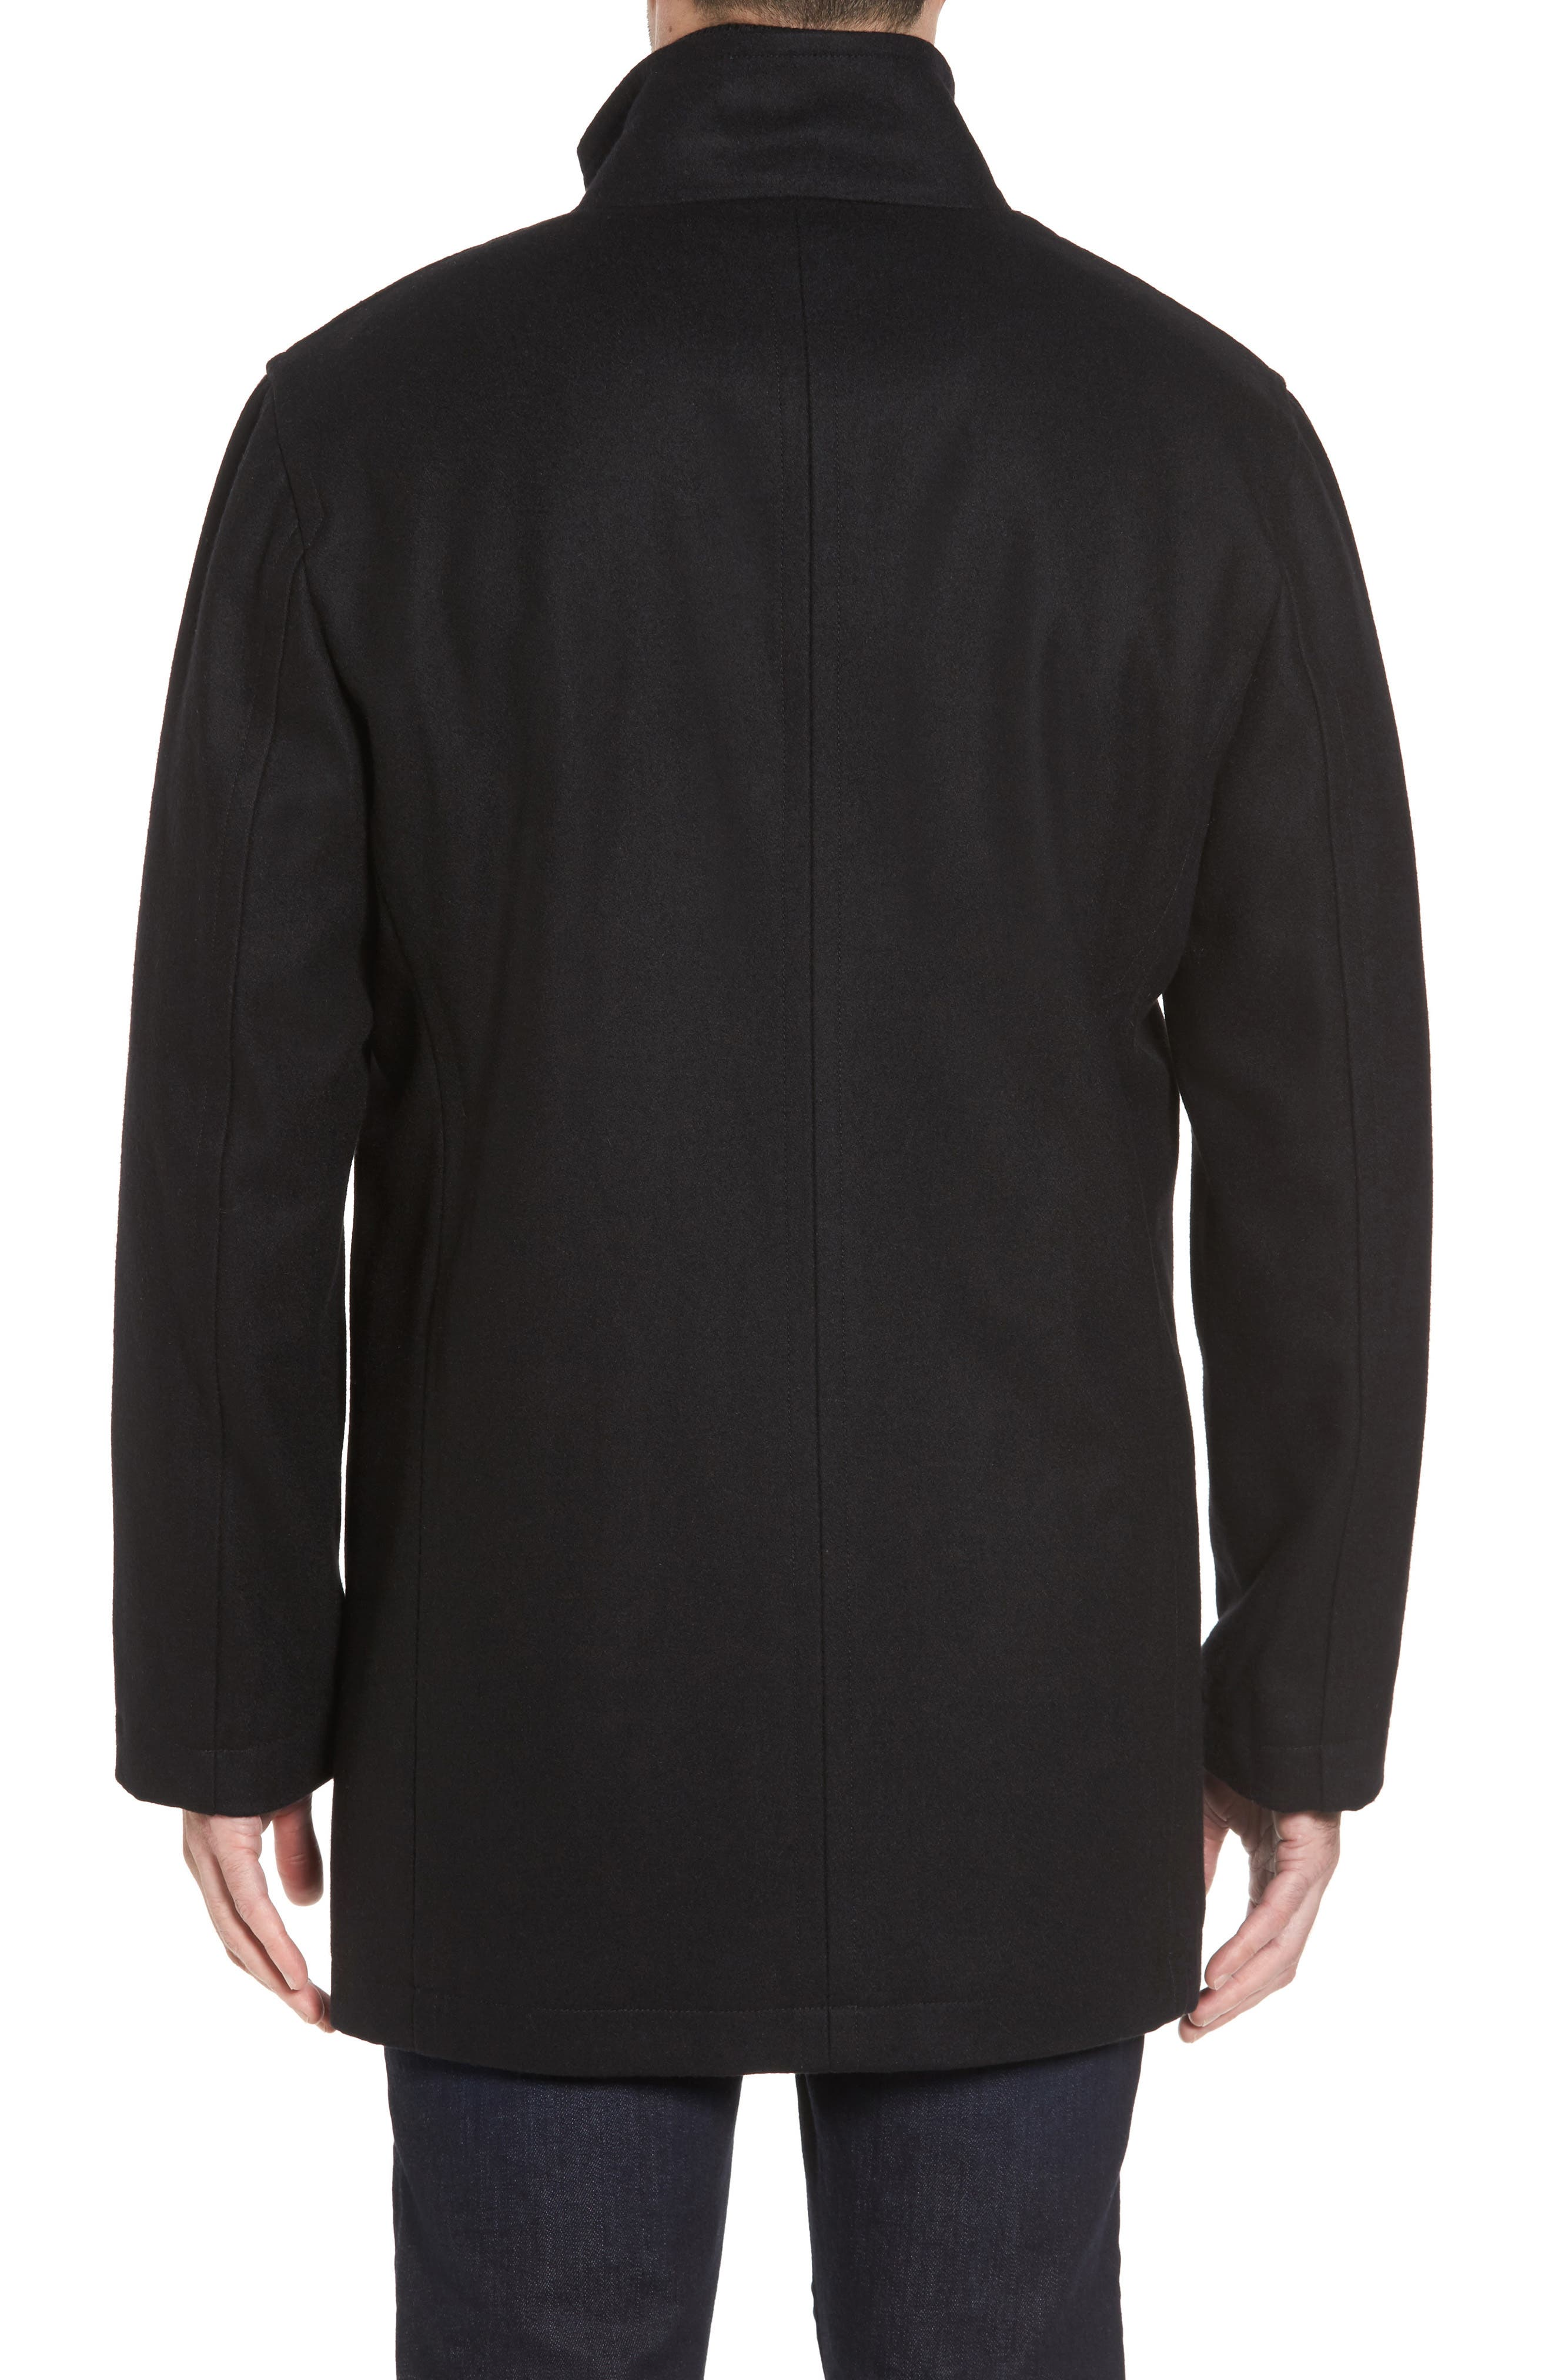 Melton Wool Blend Coat,                             Alternate thumbnail 2, color,                             BLACK